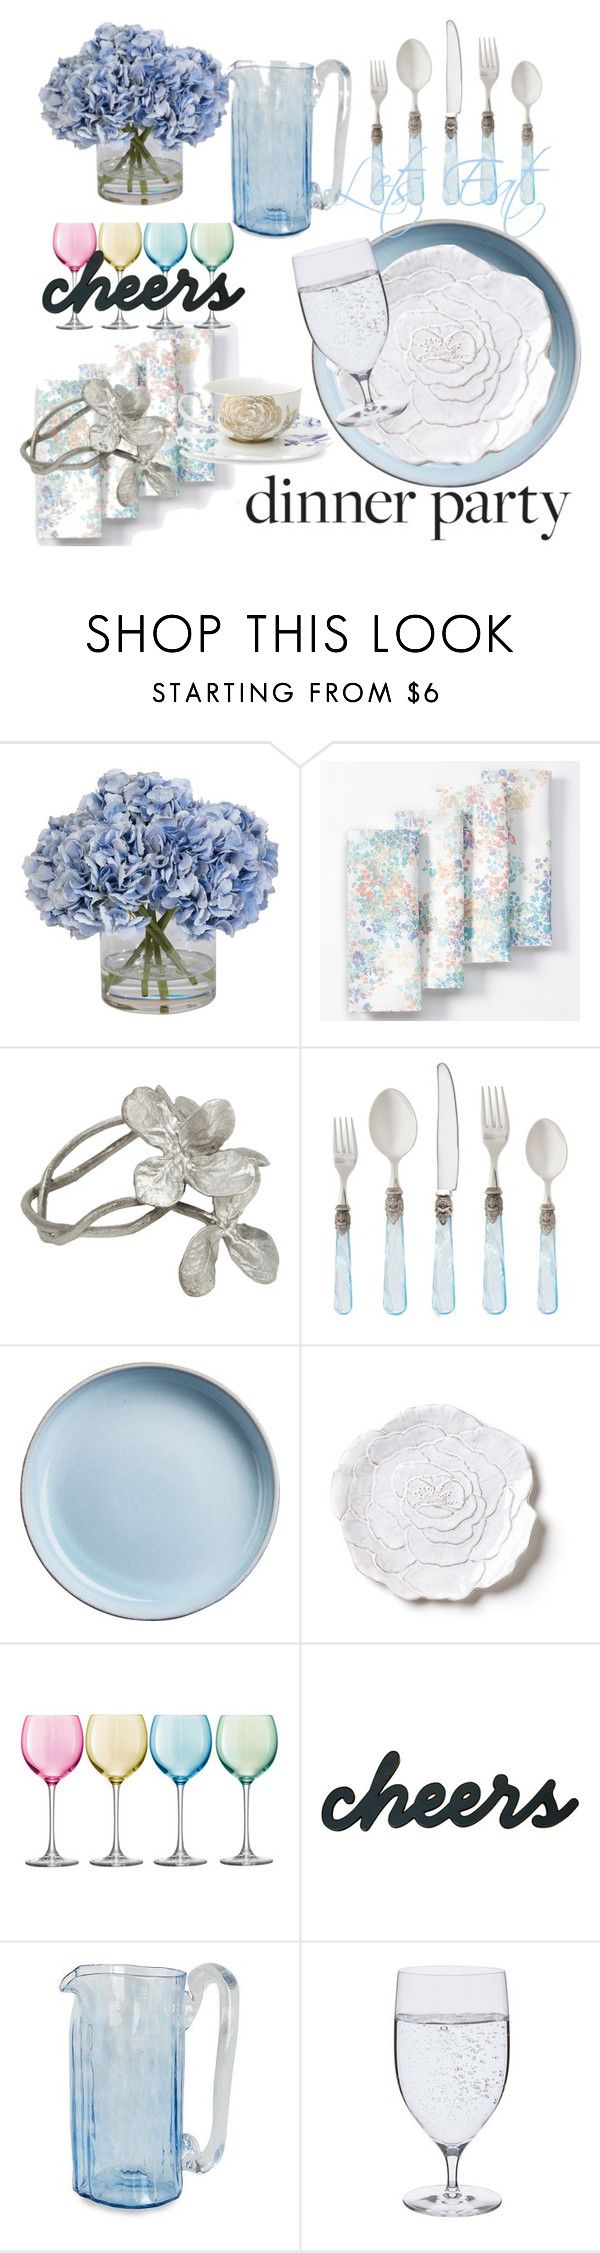 """Summer Dinner Party"" by brittlynd ❤ liked on Polyvore featuring interior, interiors, interior design, home, home decor, interior decorating, Ethan Allen, Food Network, Table Art and Rosanna"